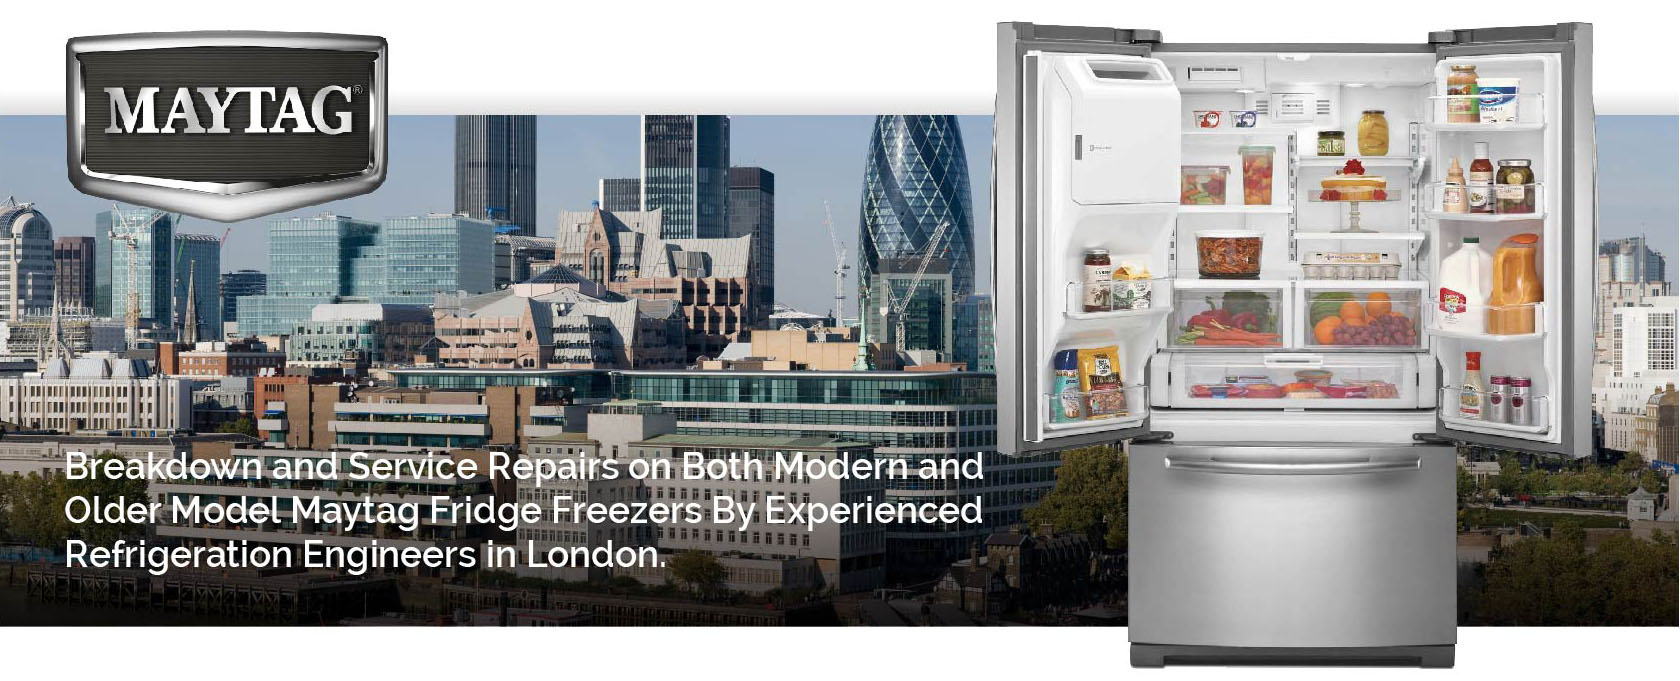 Fast and effective refrigerator repair London, Surrey, Middlesex, Hertfordshire, from Maytag.